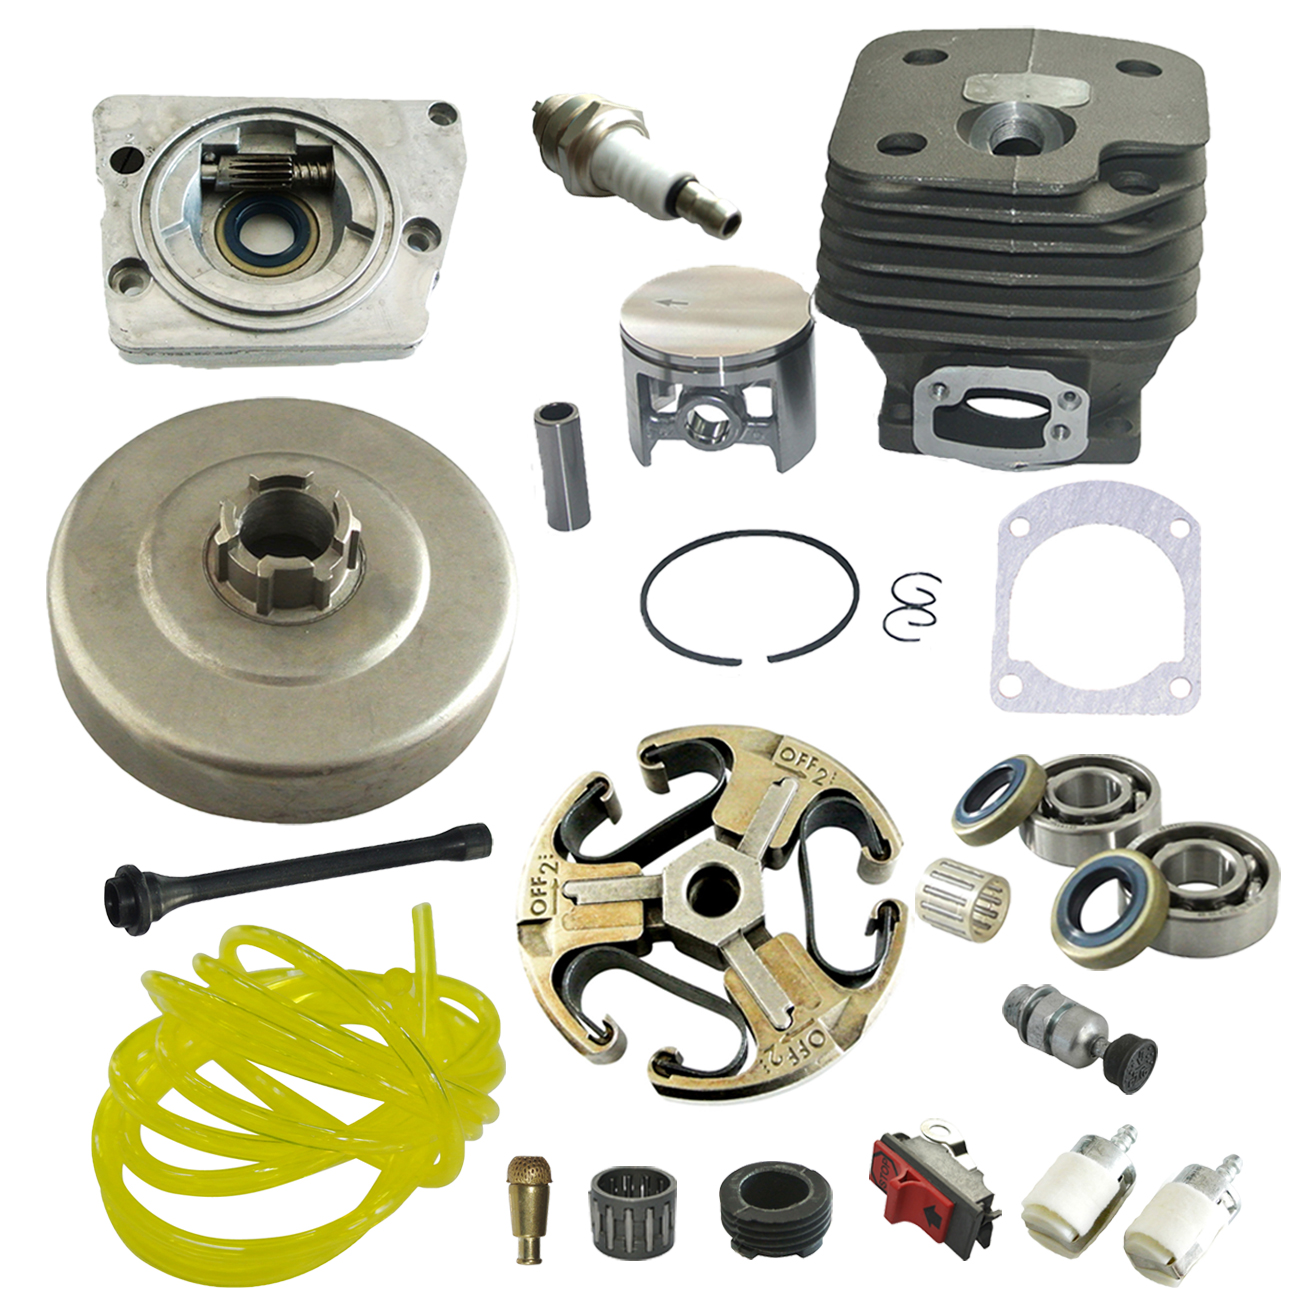 цена на 52mm Piston & Clutch Drum & Oil Pump & Cylinder Kit Fits For HUSQVARNA 268 272 Chainsaw